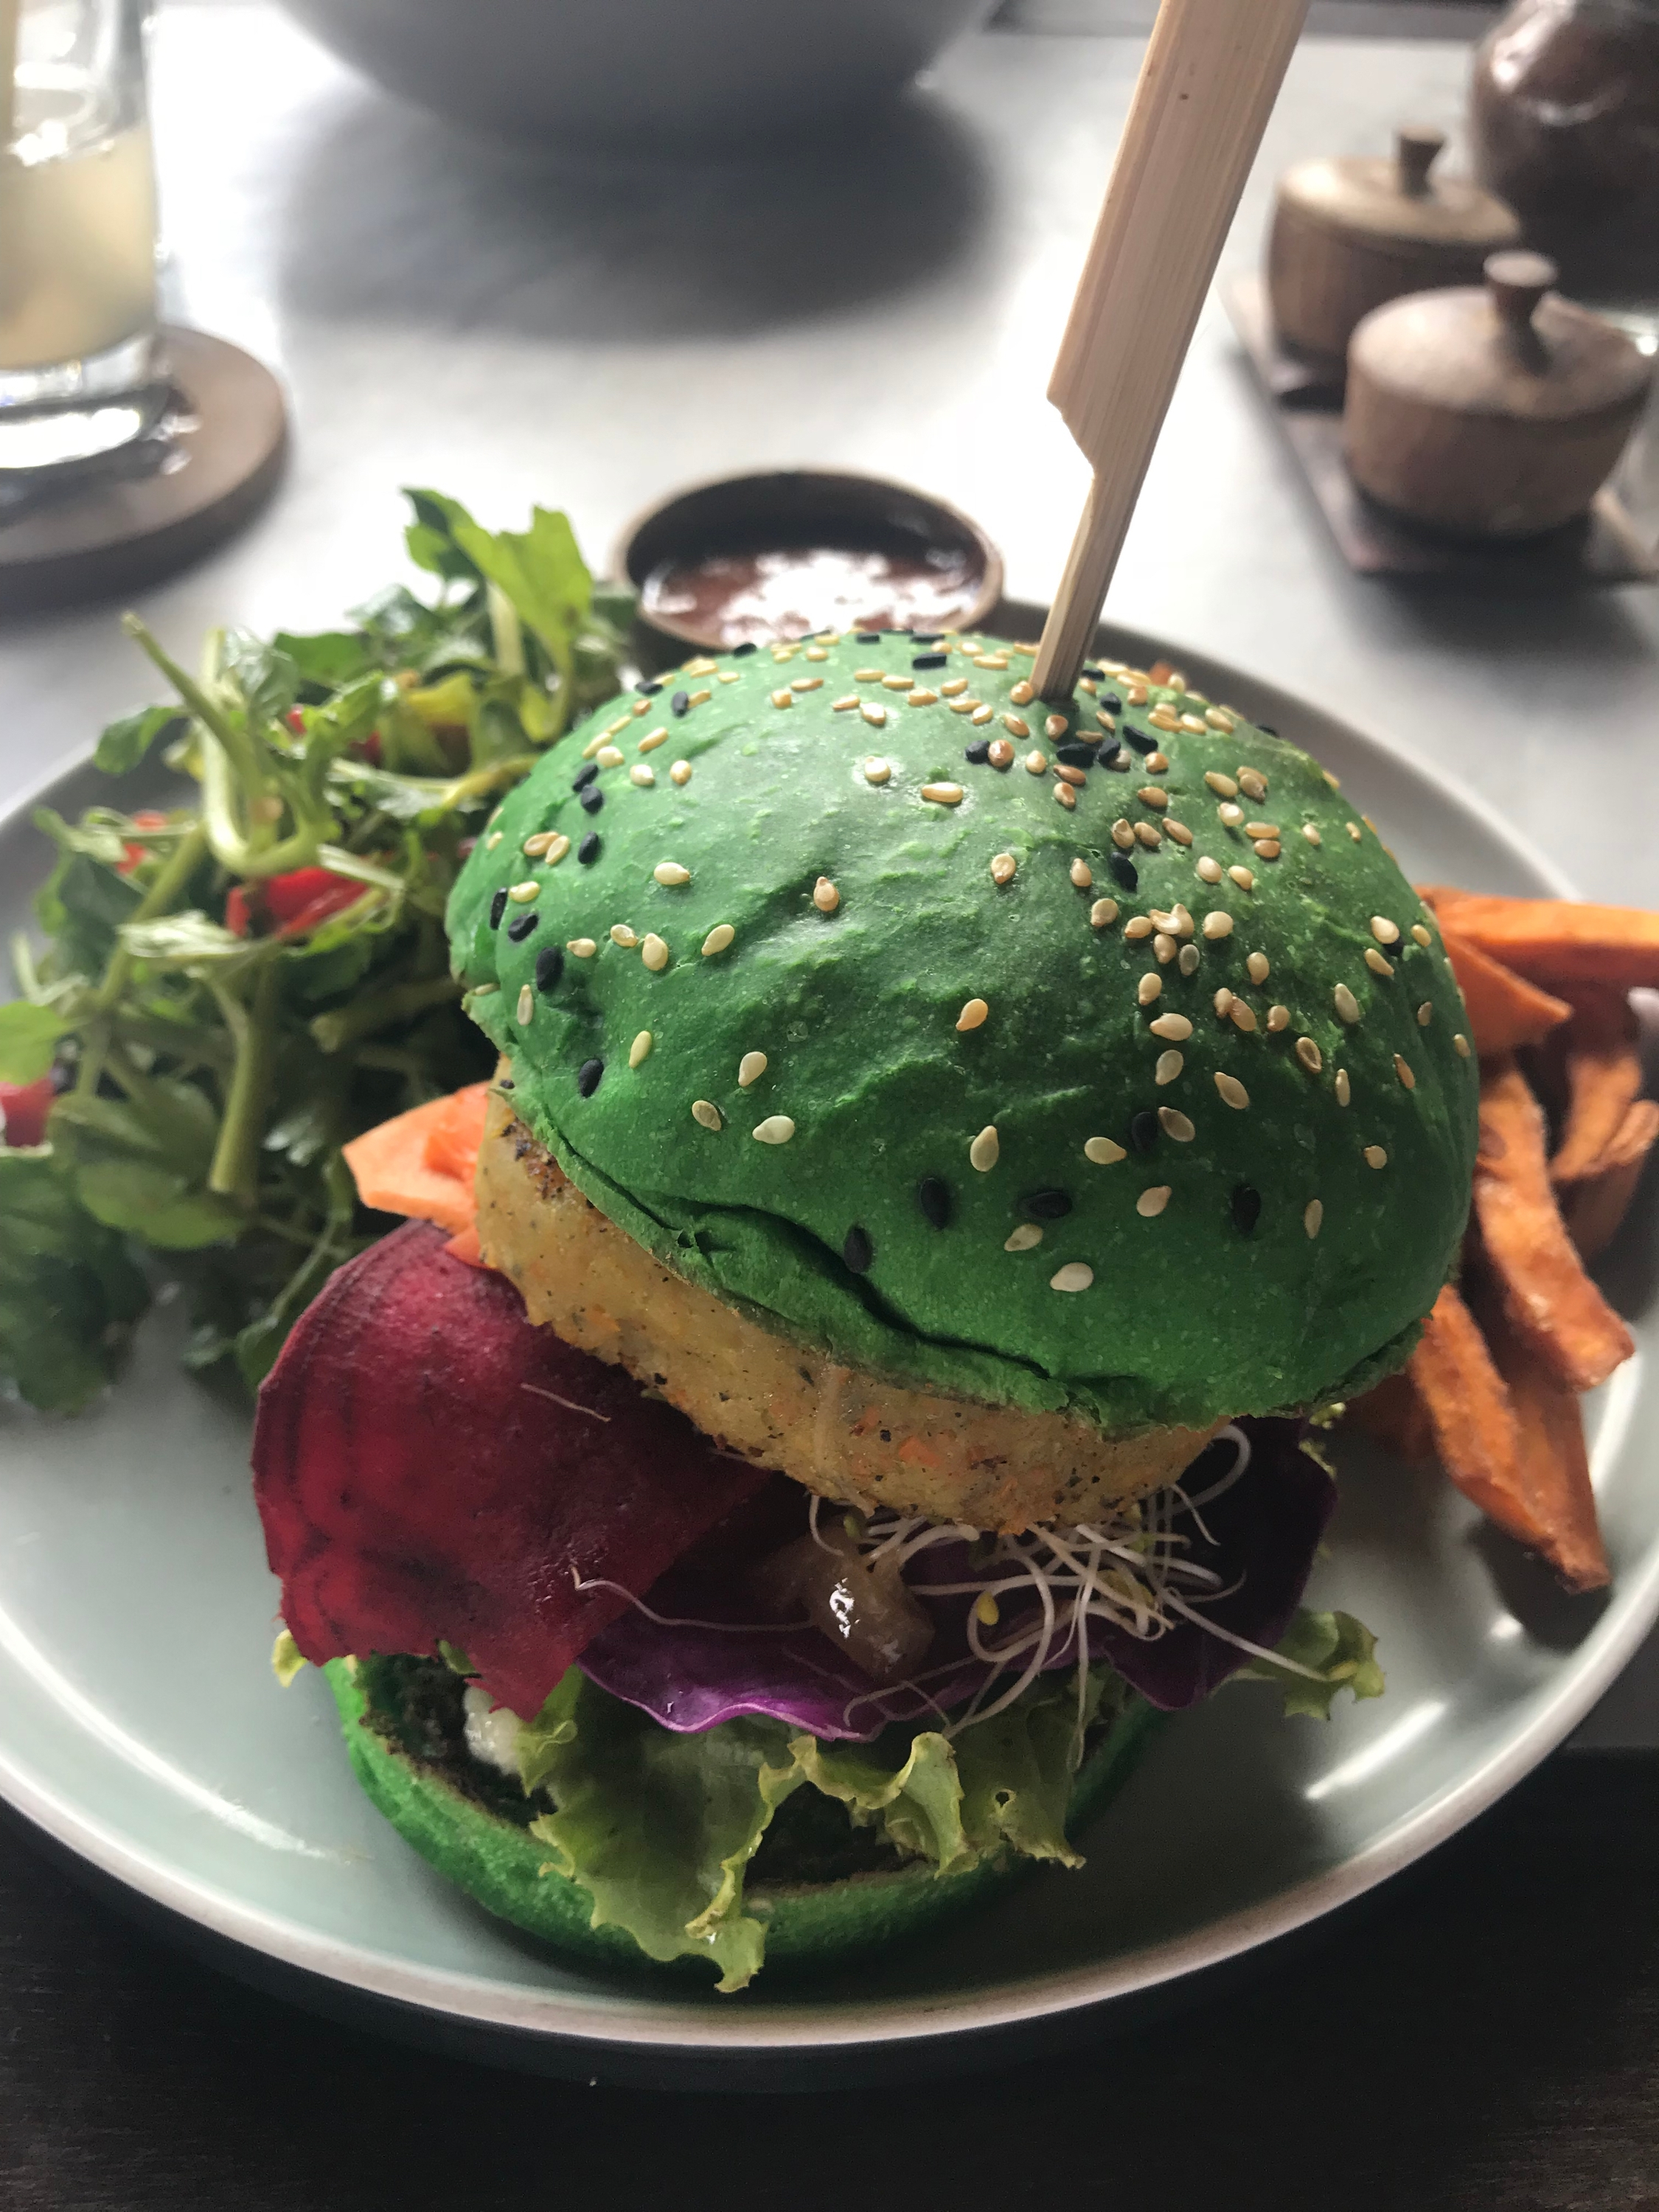 Veggie burgers and green buns